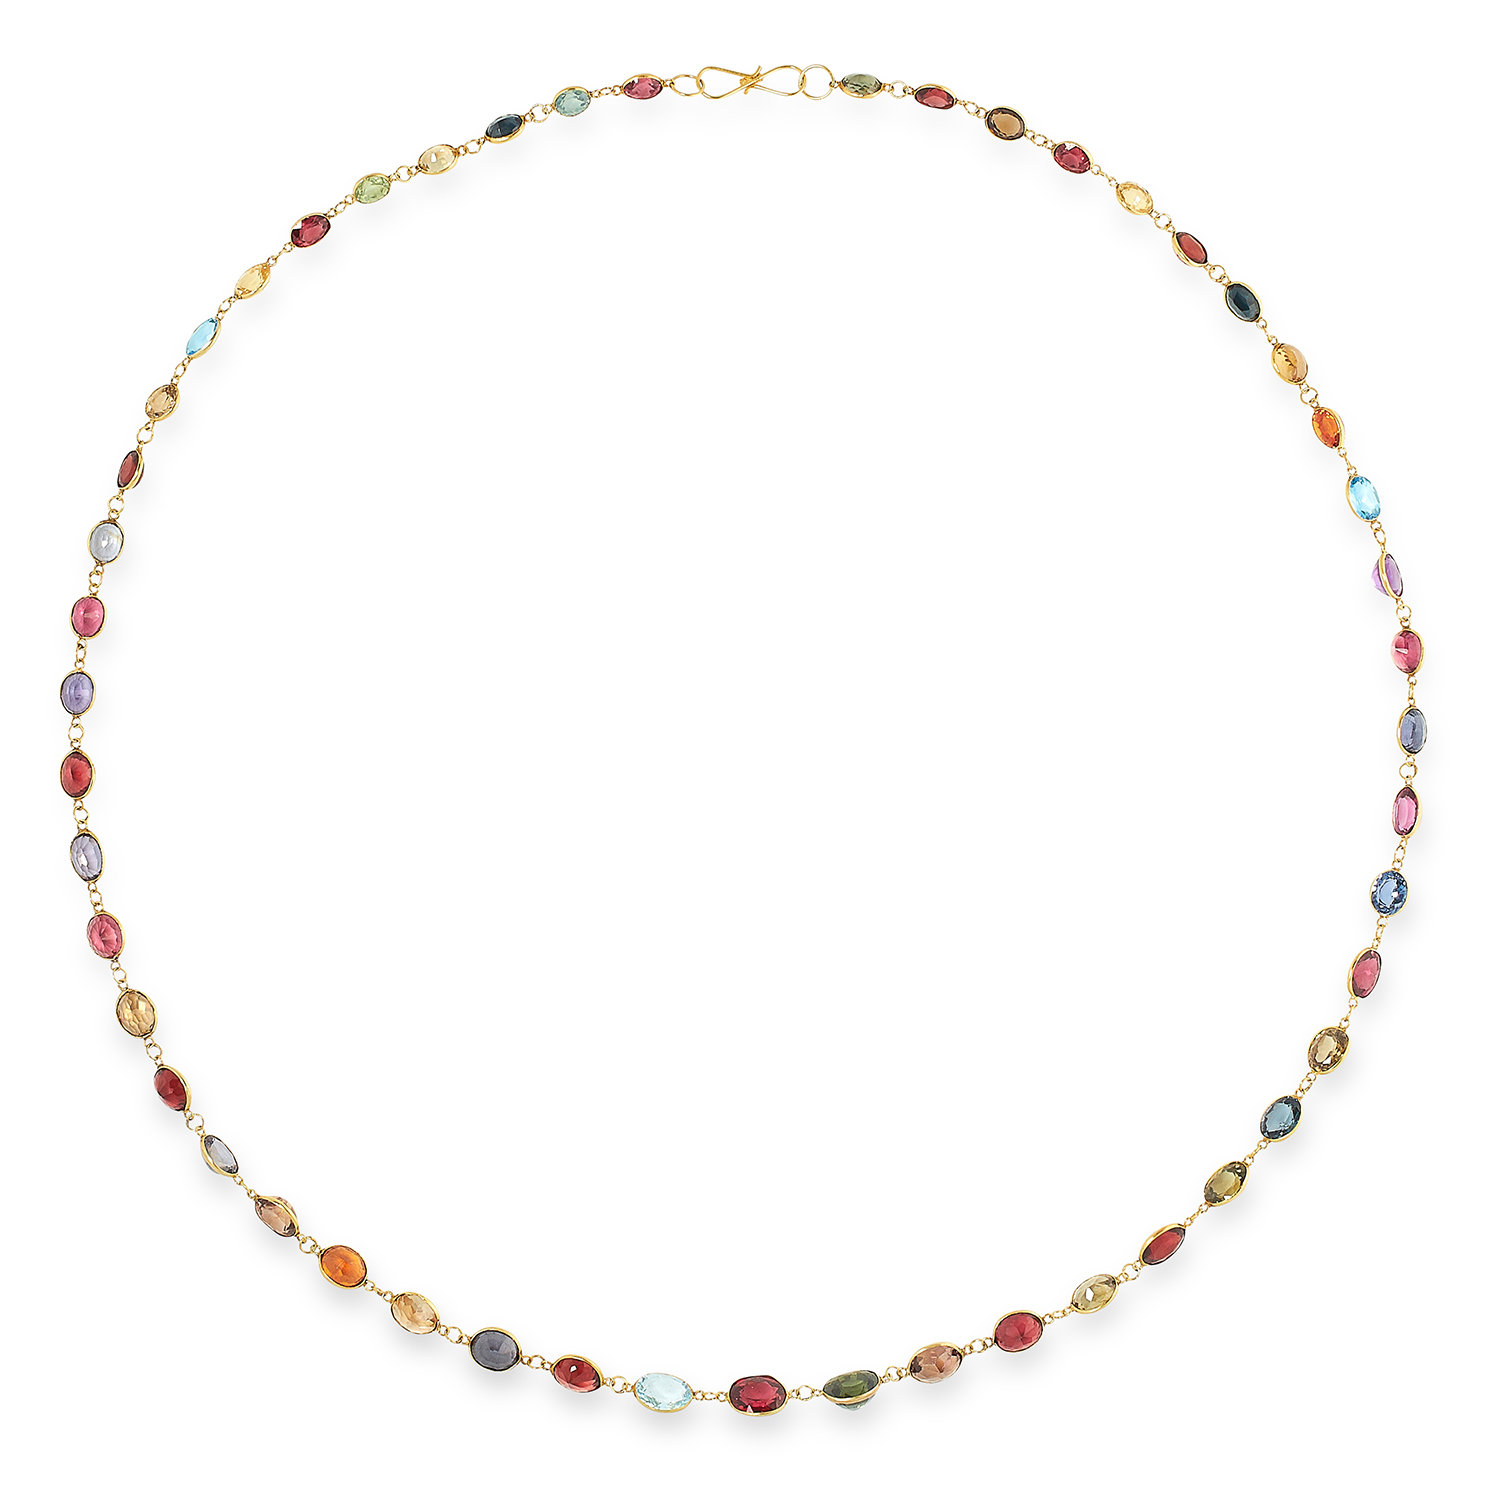 Los 38 - GEMSET NECKLACE comprising of a long fine chain set with oval cut topaz, garnets, prasiolite and